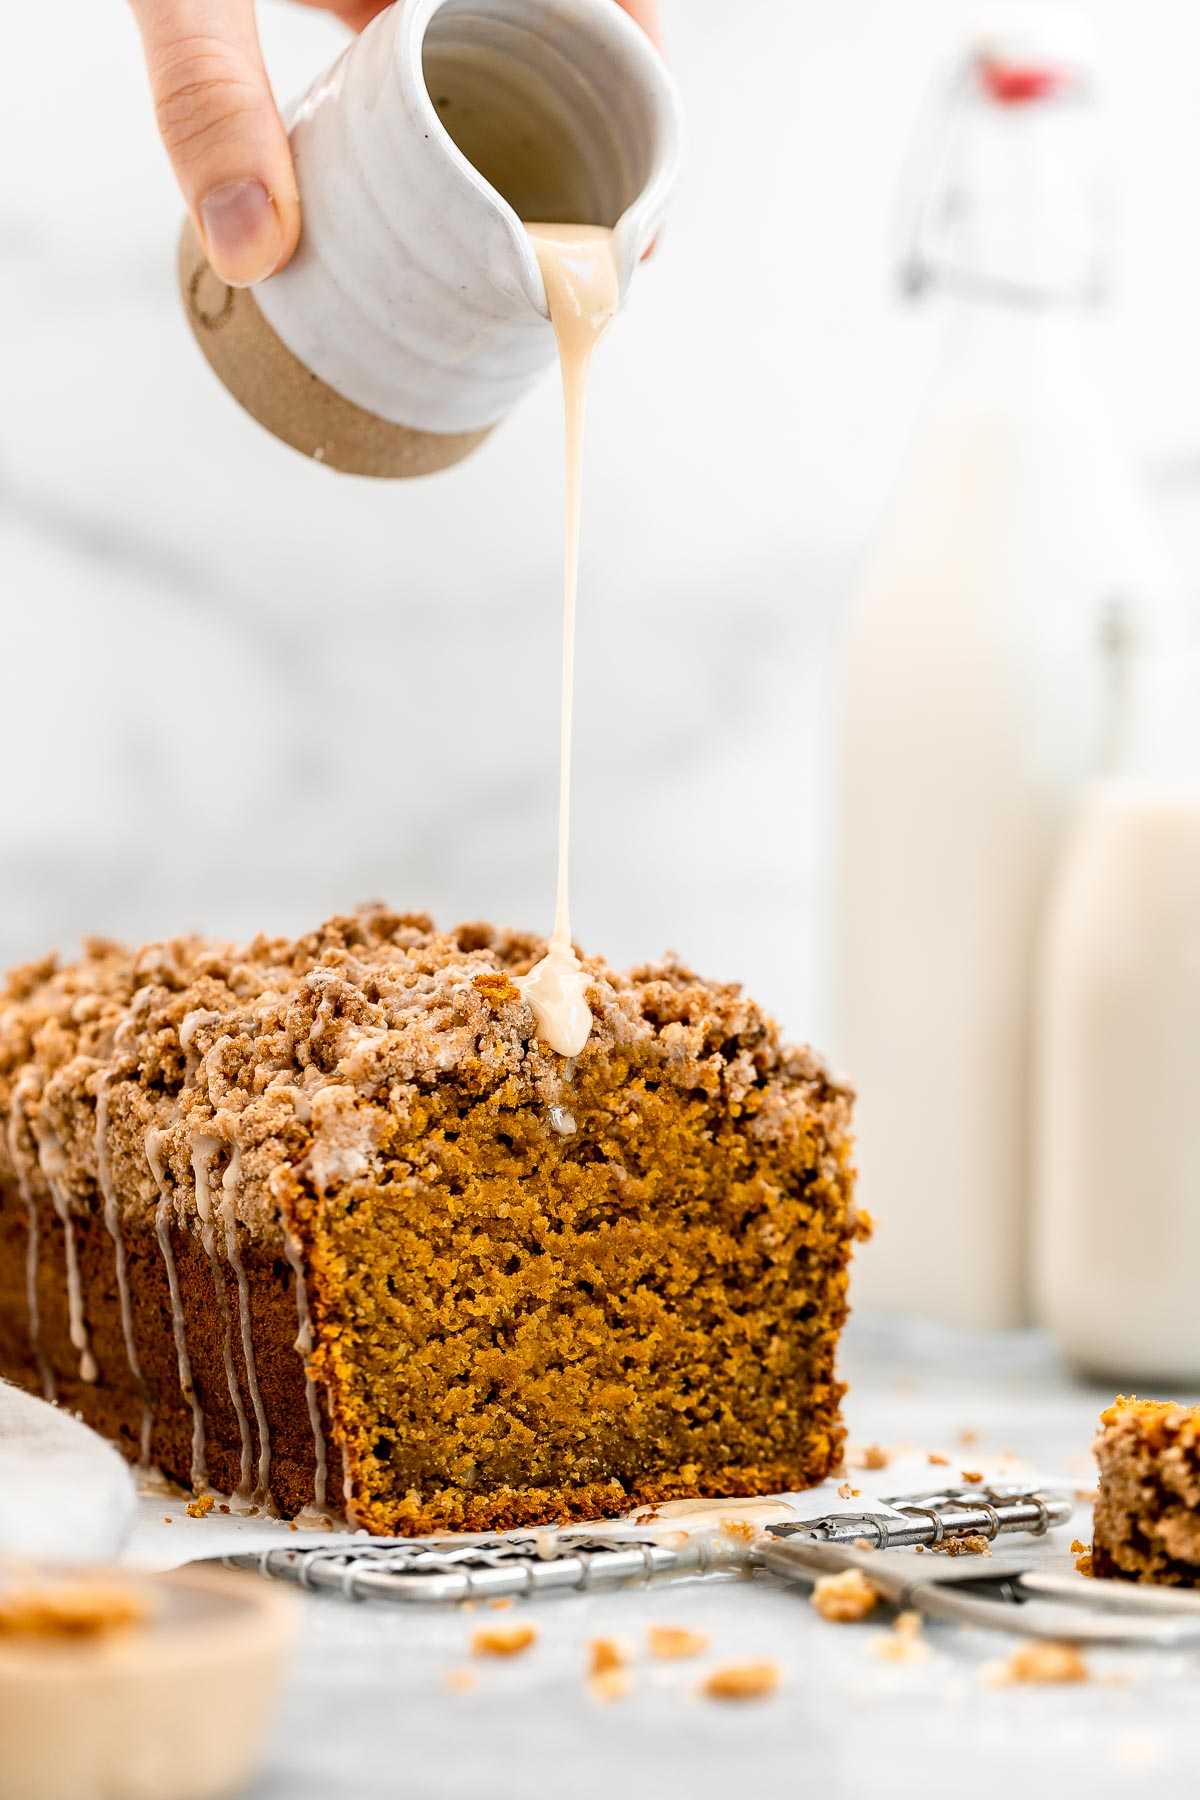 Pouring the maple glaze on top of the healthy pumpkin bread.